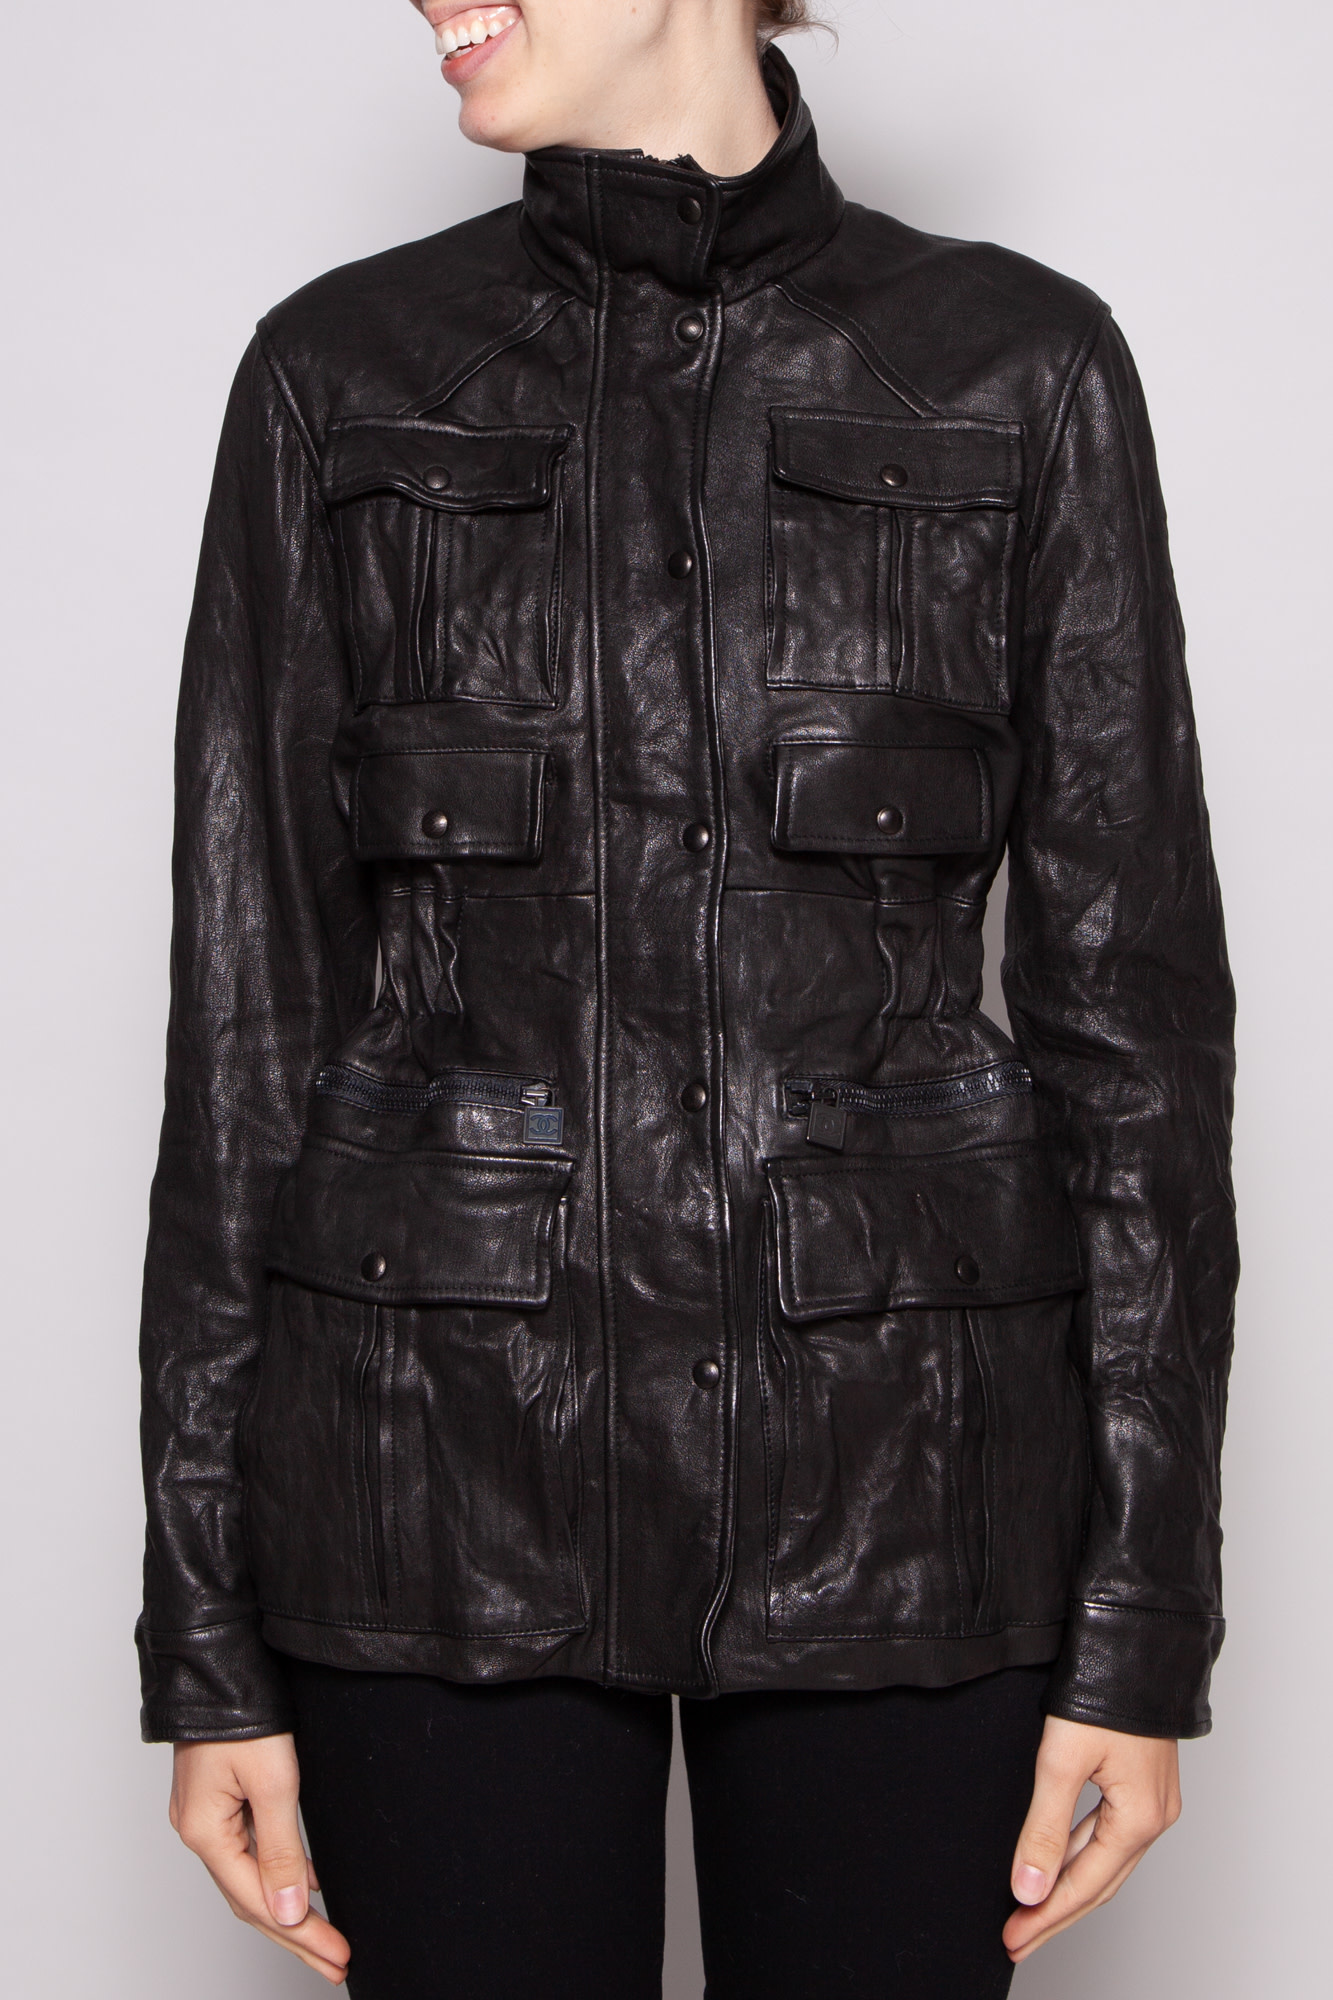 Chanel NEW PRICE (WAS $1300) - BLACK LEATHER UTILITY JACKET